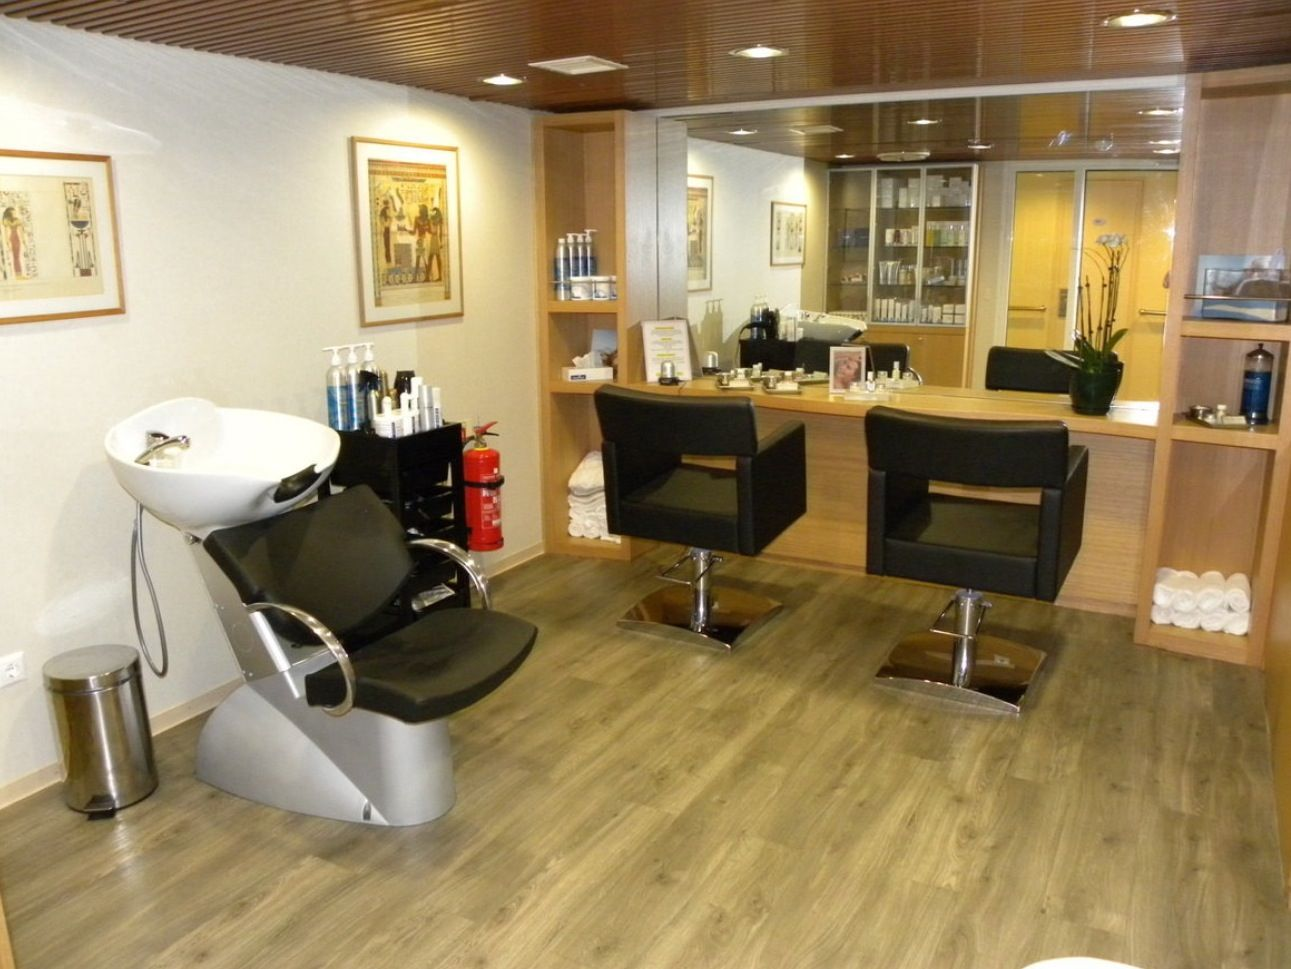 Small salon perfect want want want just for me for Hair salon interior design photo